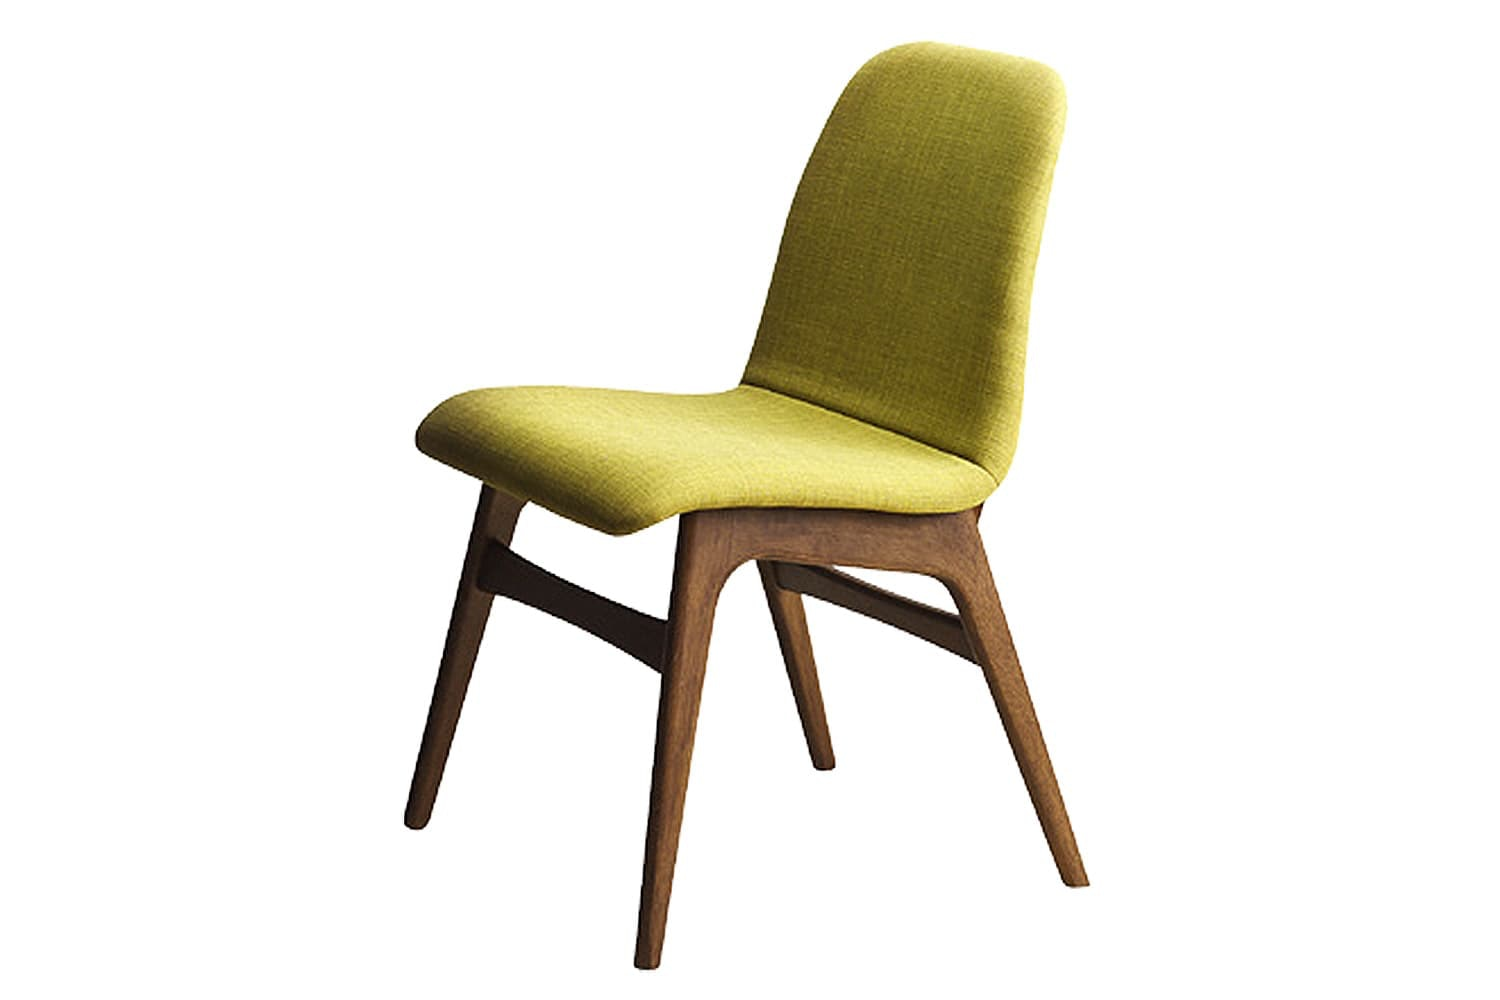 Espresso Embrace Dining Chair by Nero Furniture